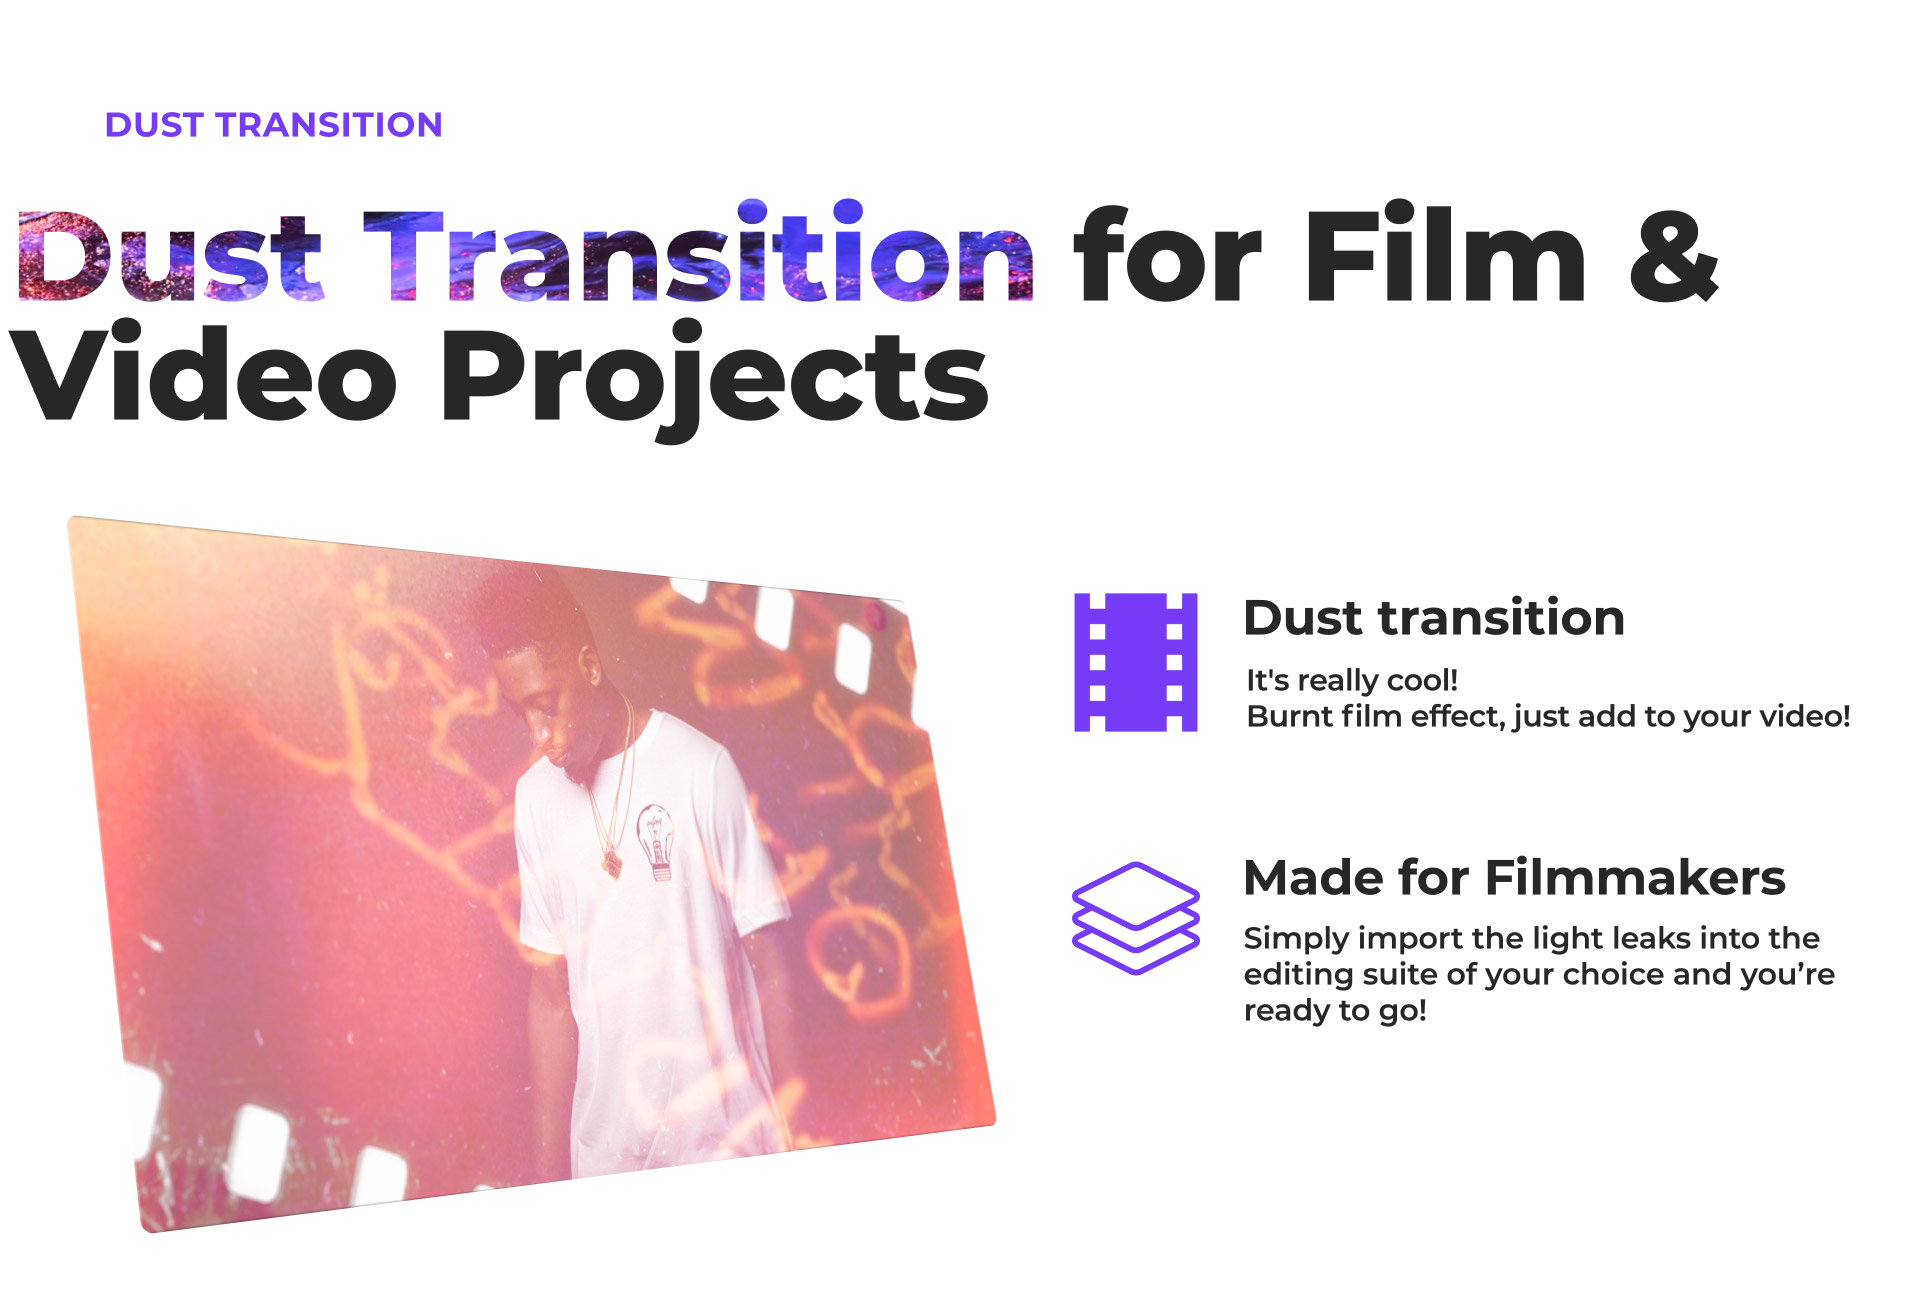 Dust-transition-01.jpg